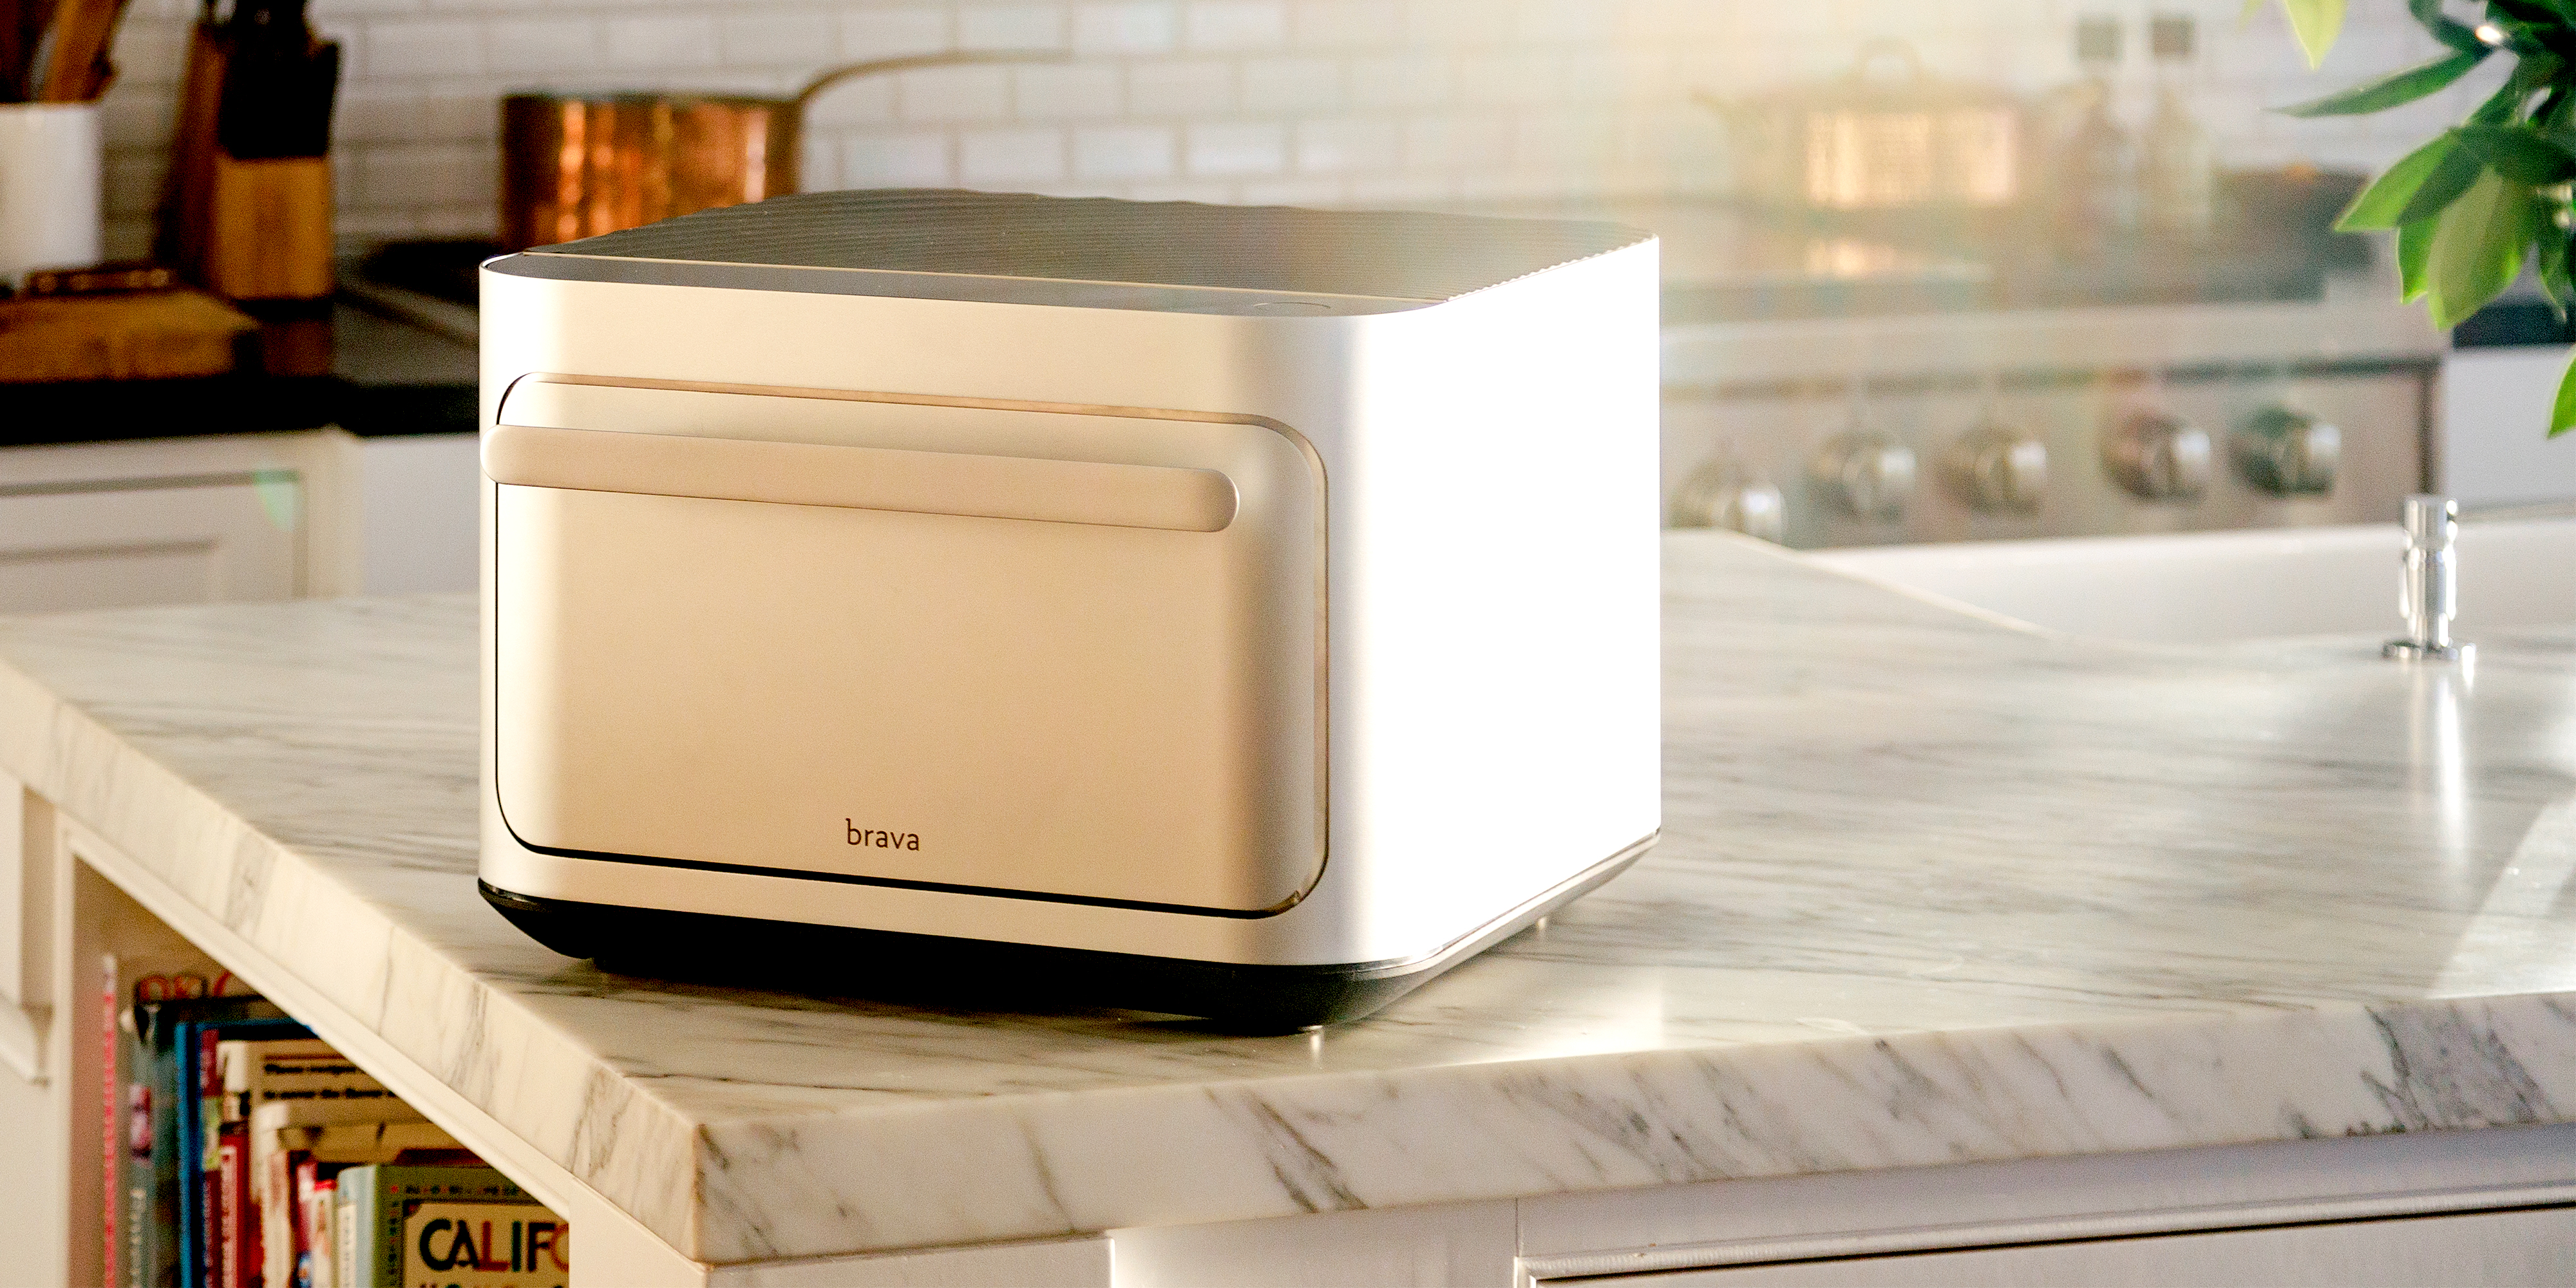 meet brava: the tesla of easy bake ovens (or something like that) 🥘